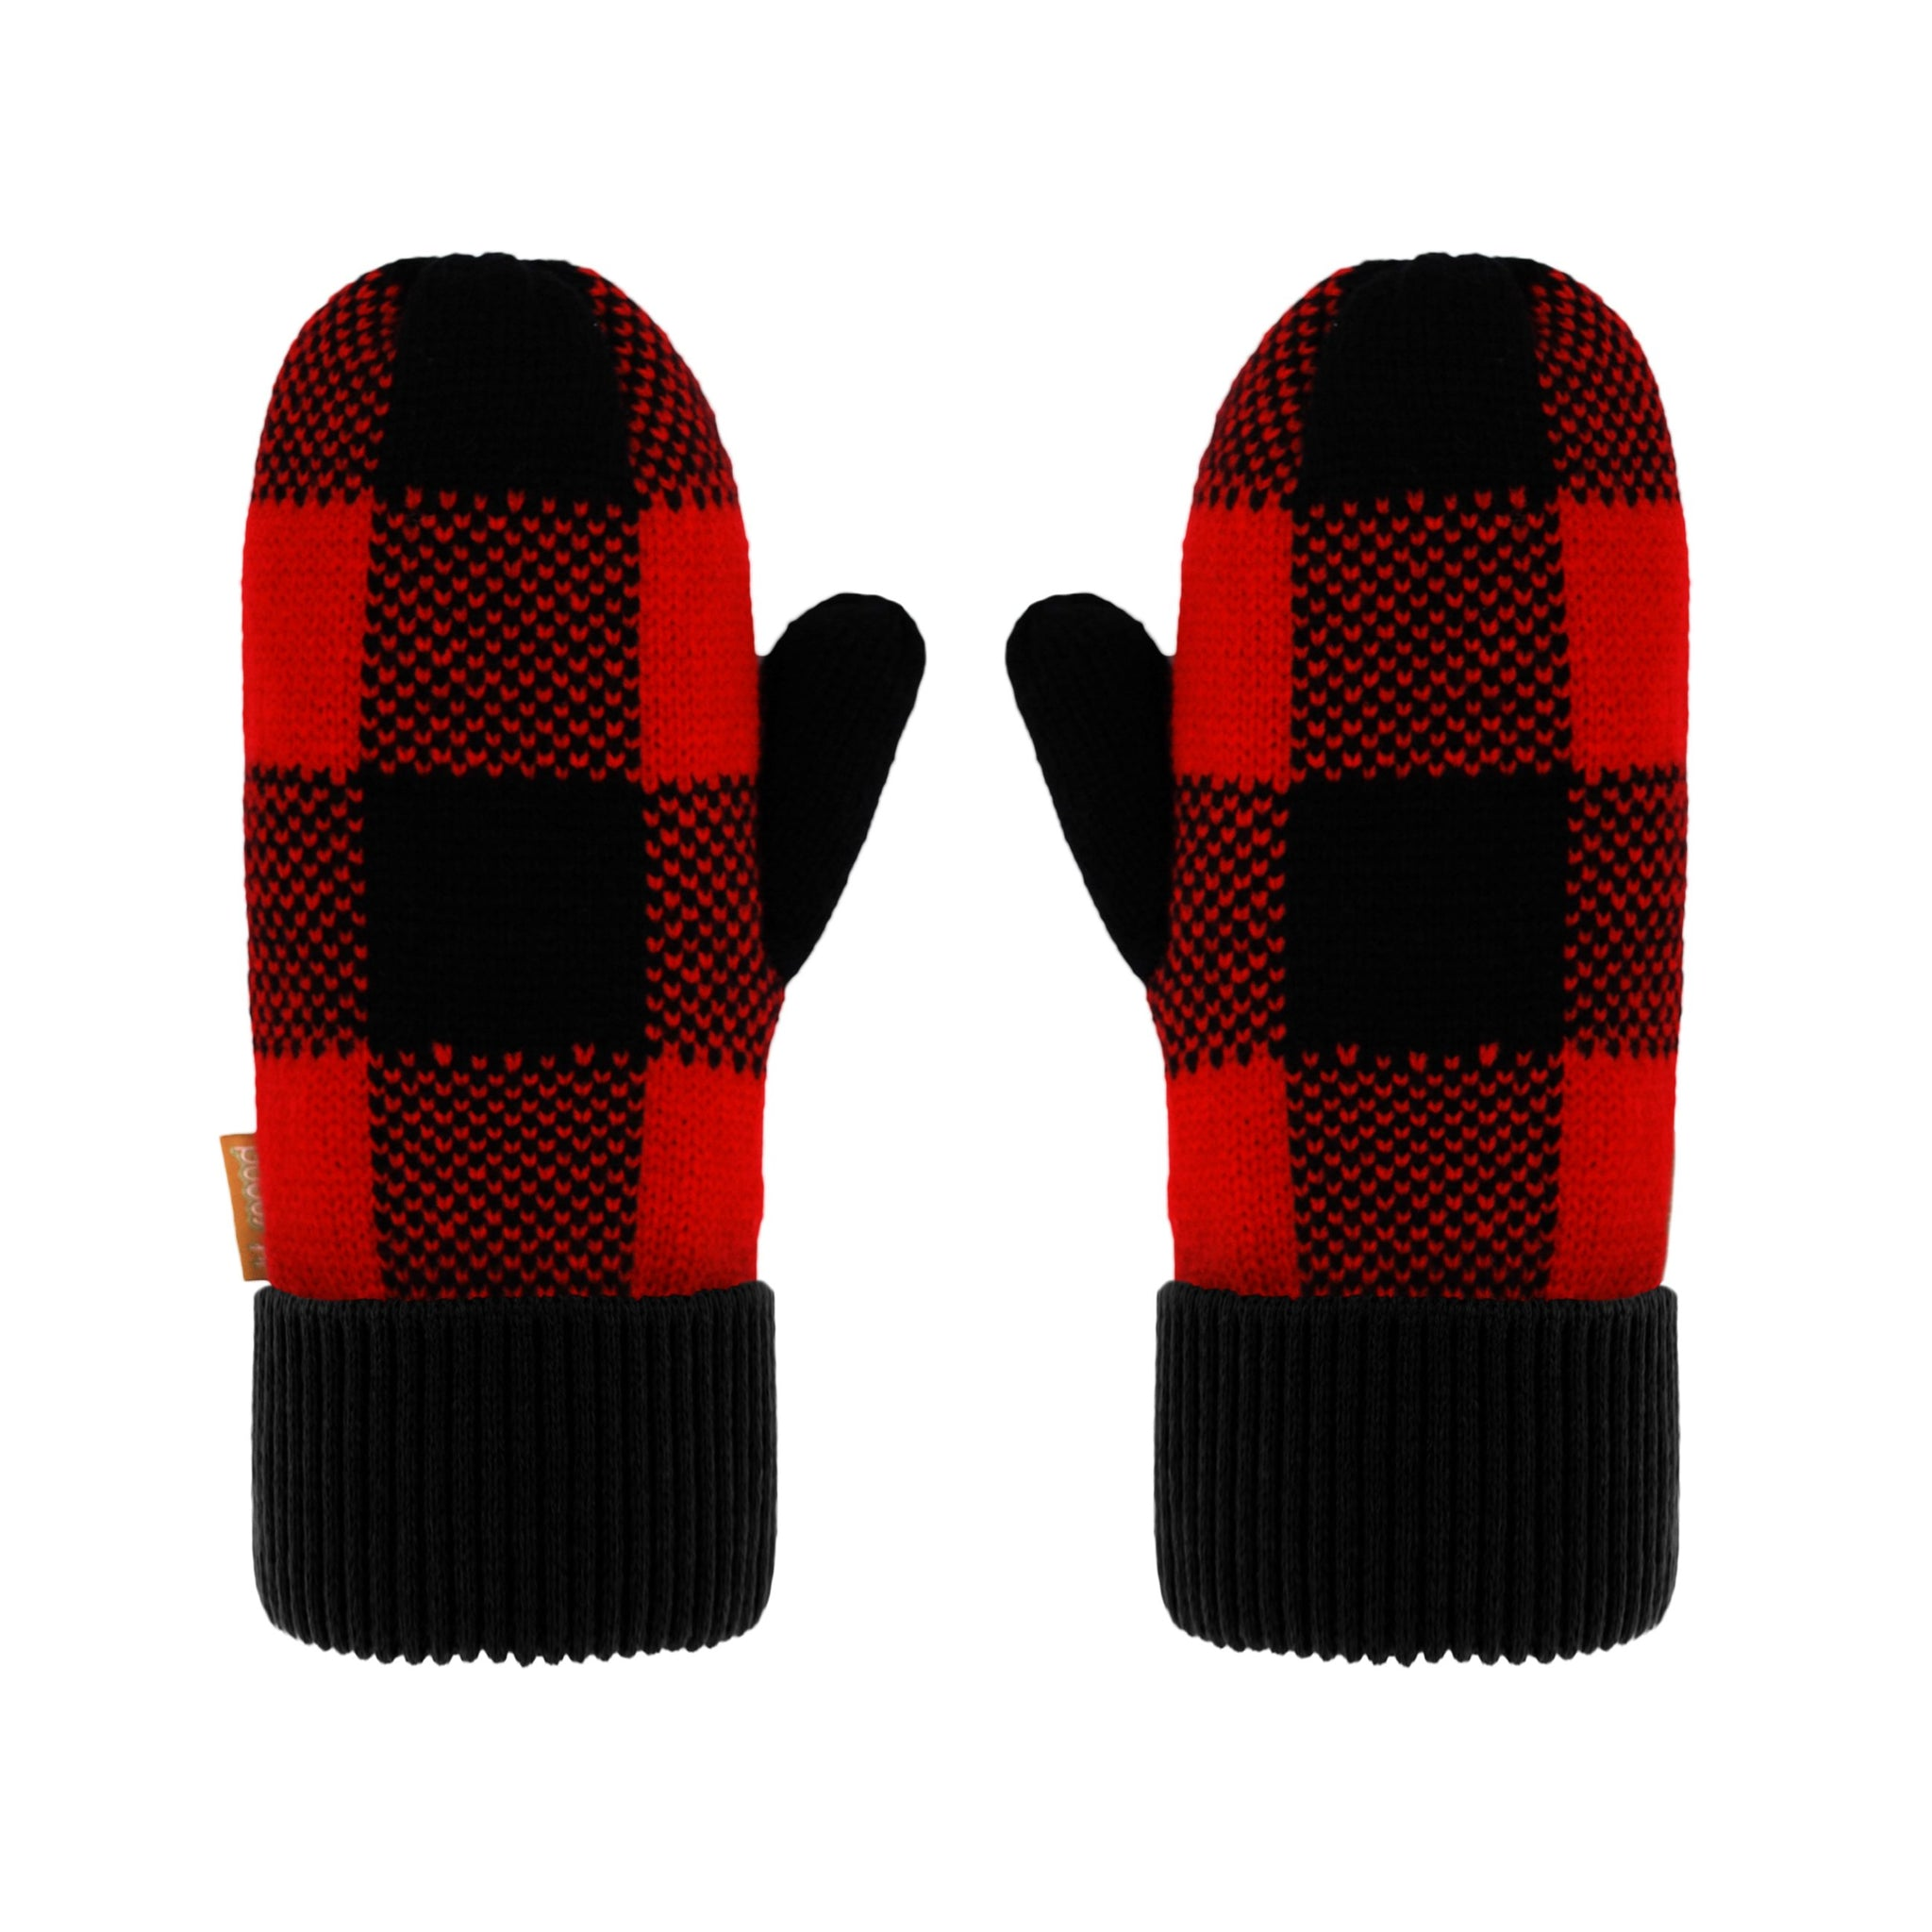 Pudus Classic Knit Winter Mittens for Women, Sherpa Fleece-Lined Warm Gloves Lumberjack Red - Mittens Adult